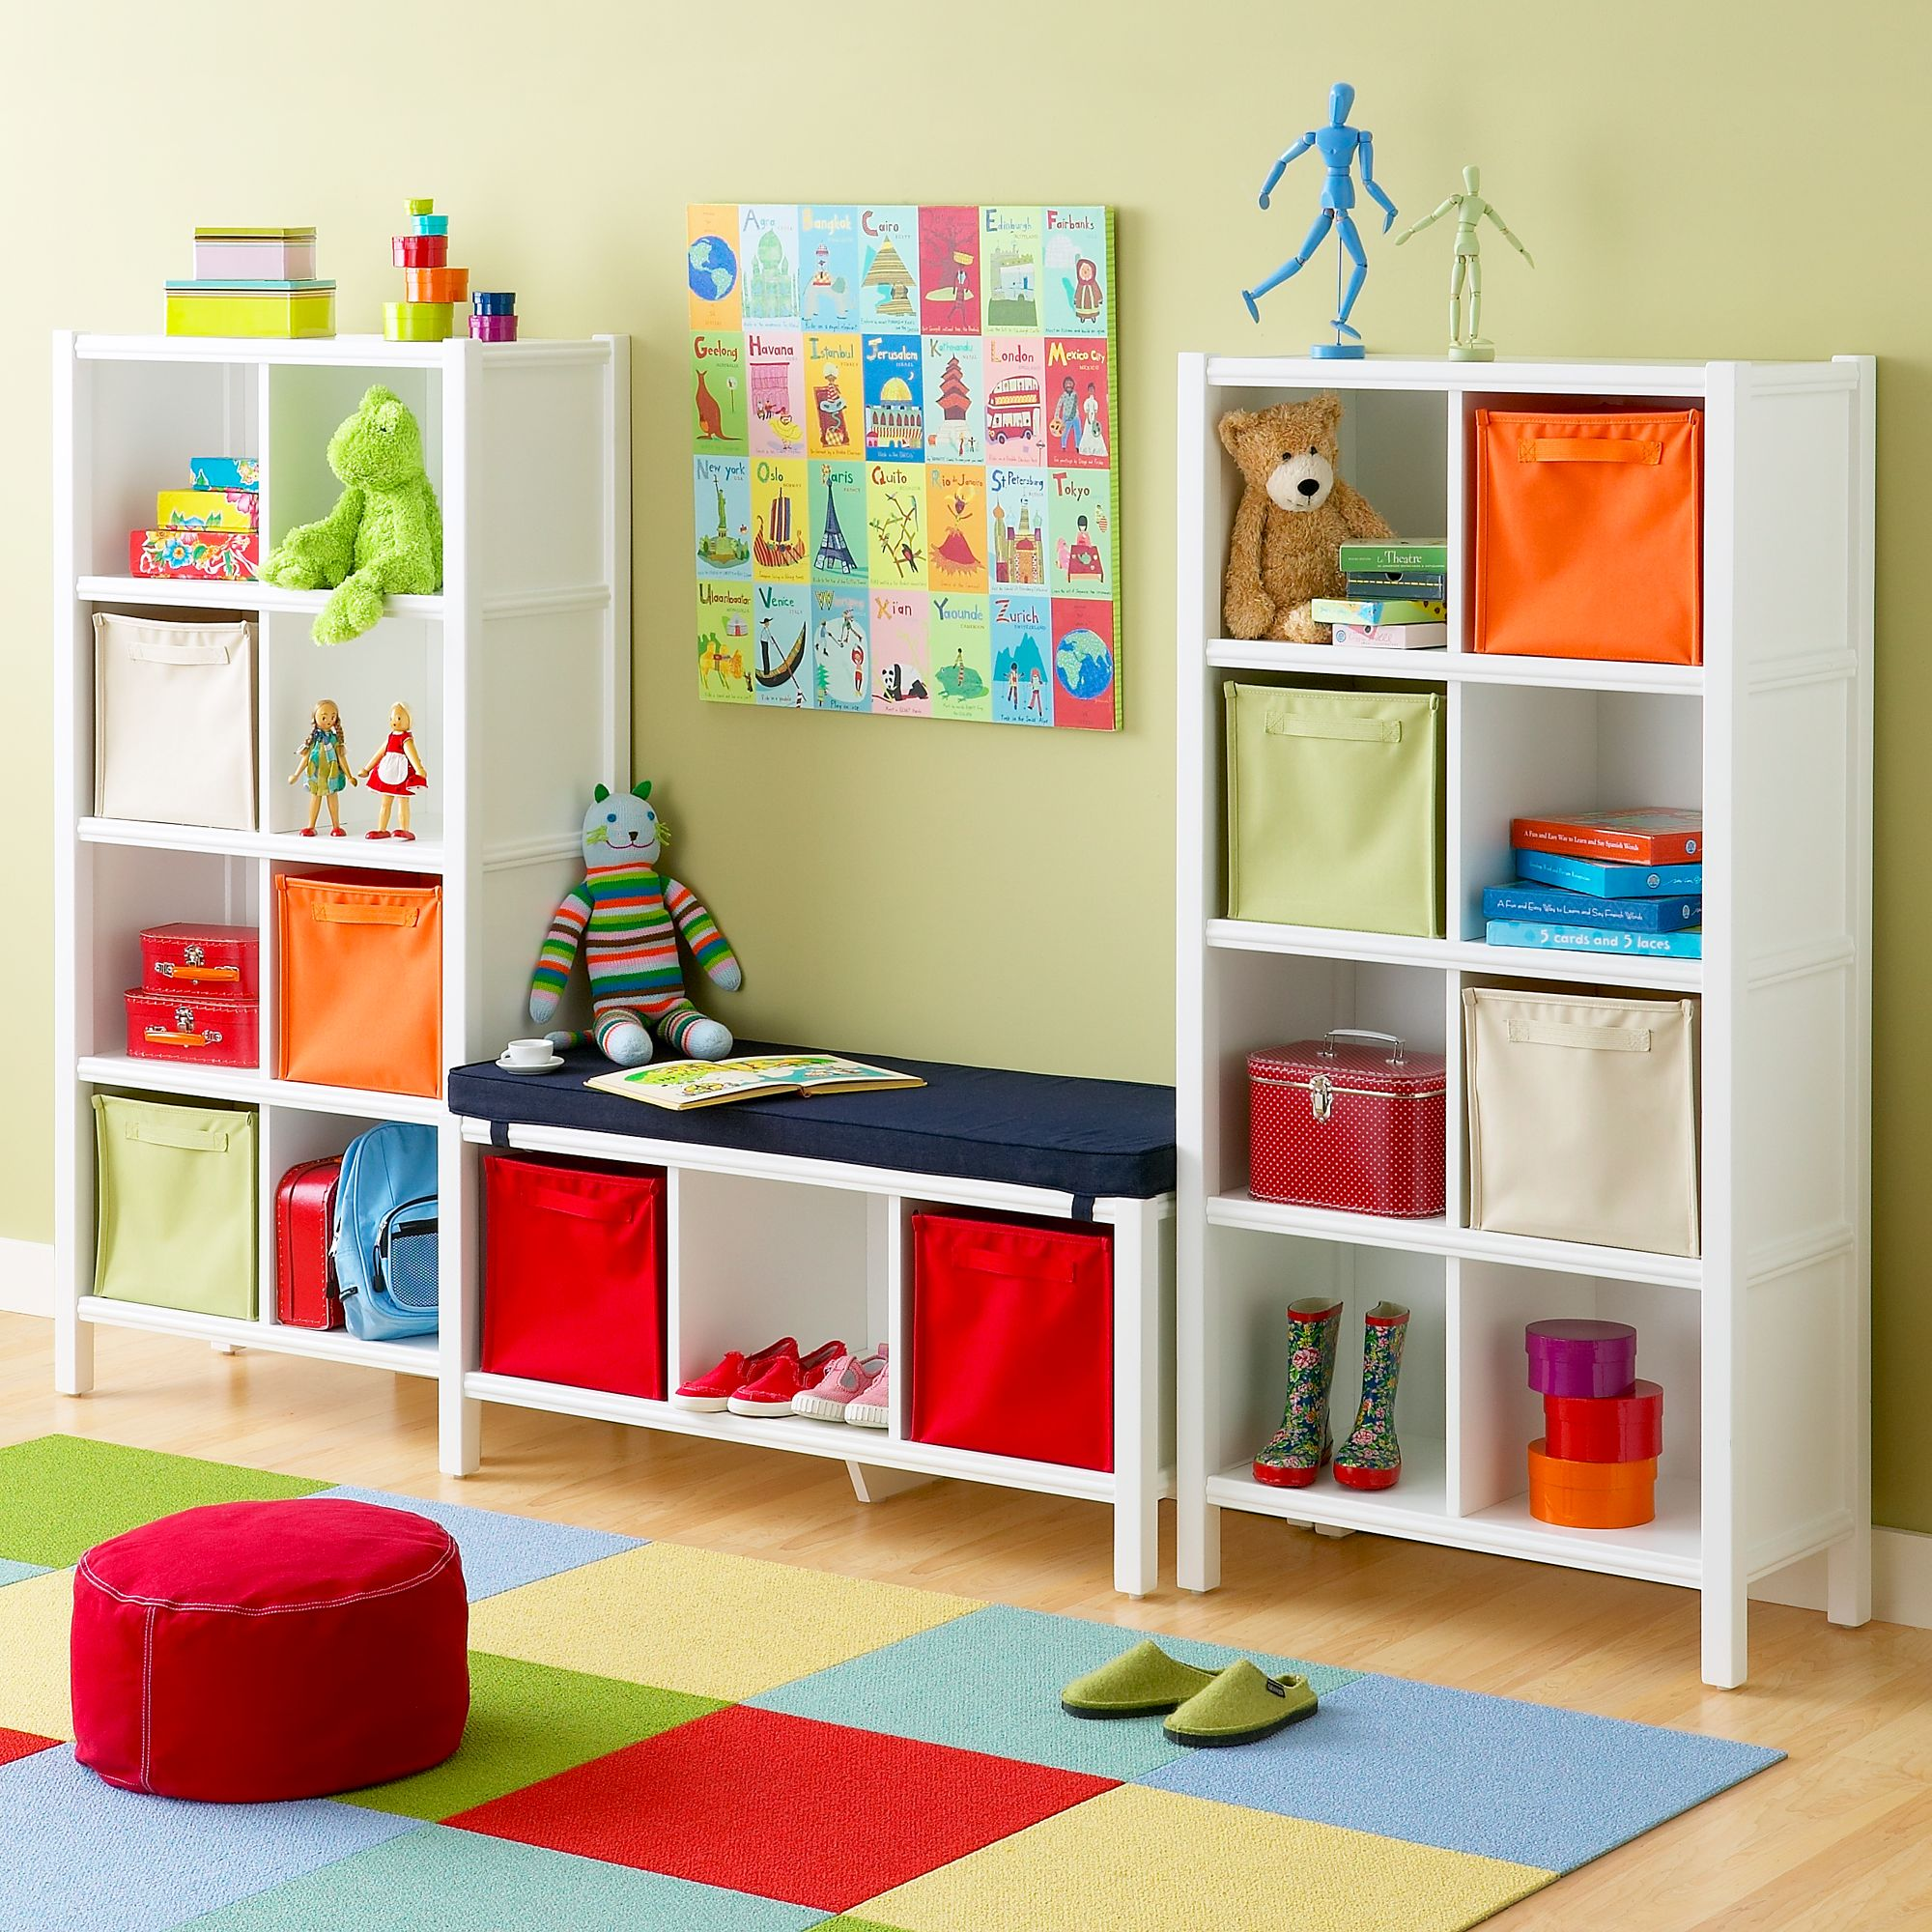 301 moved permanently Kid room ideas for small spaces